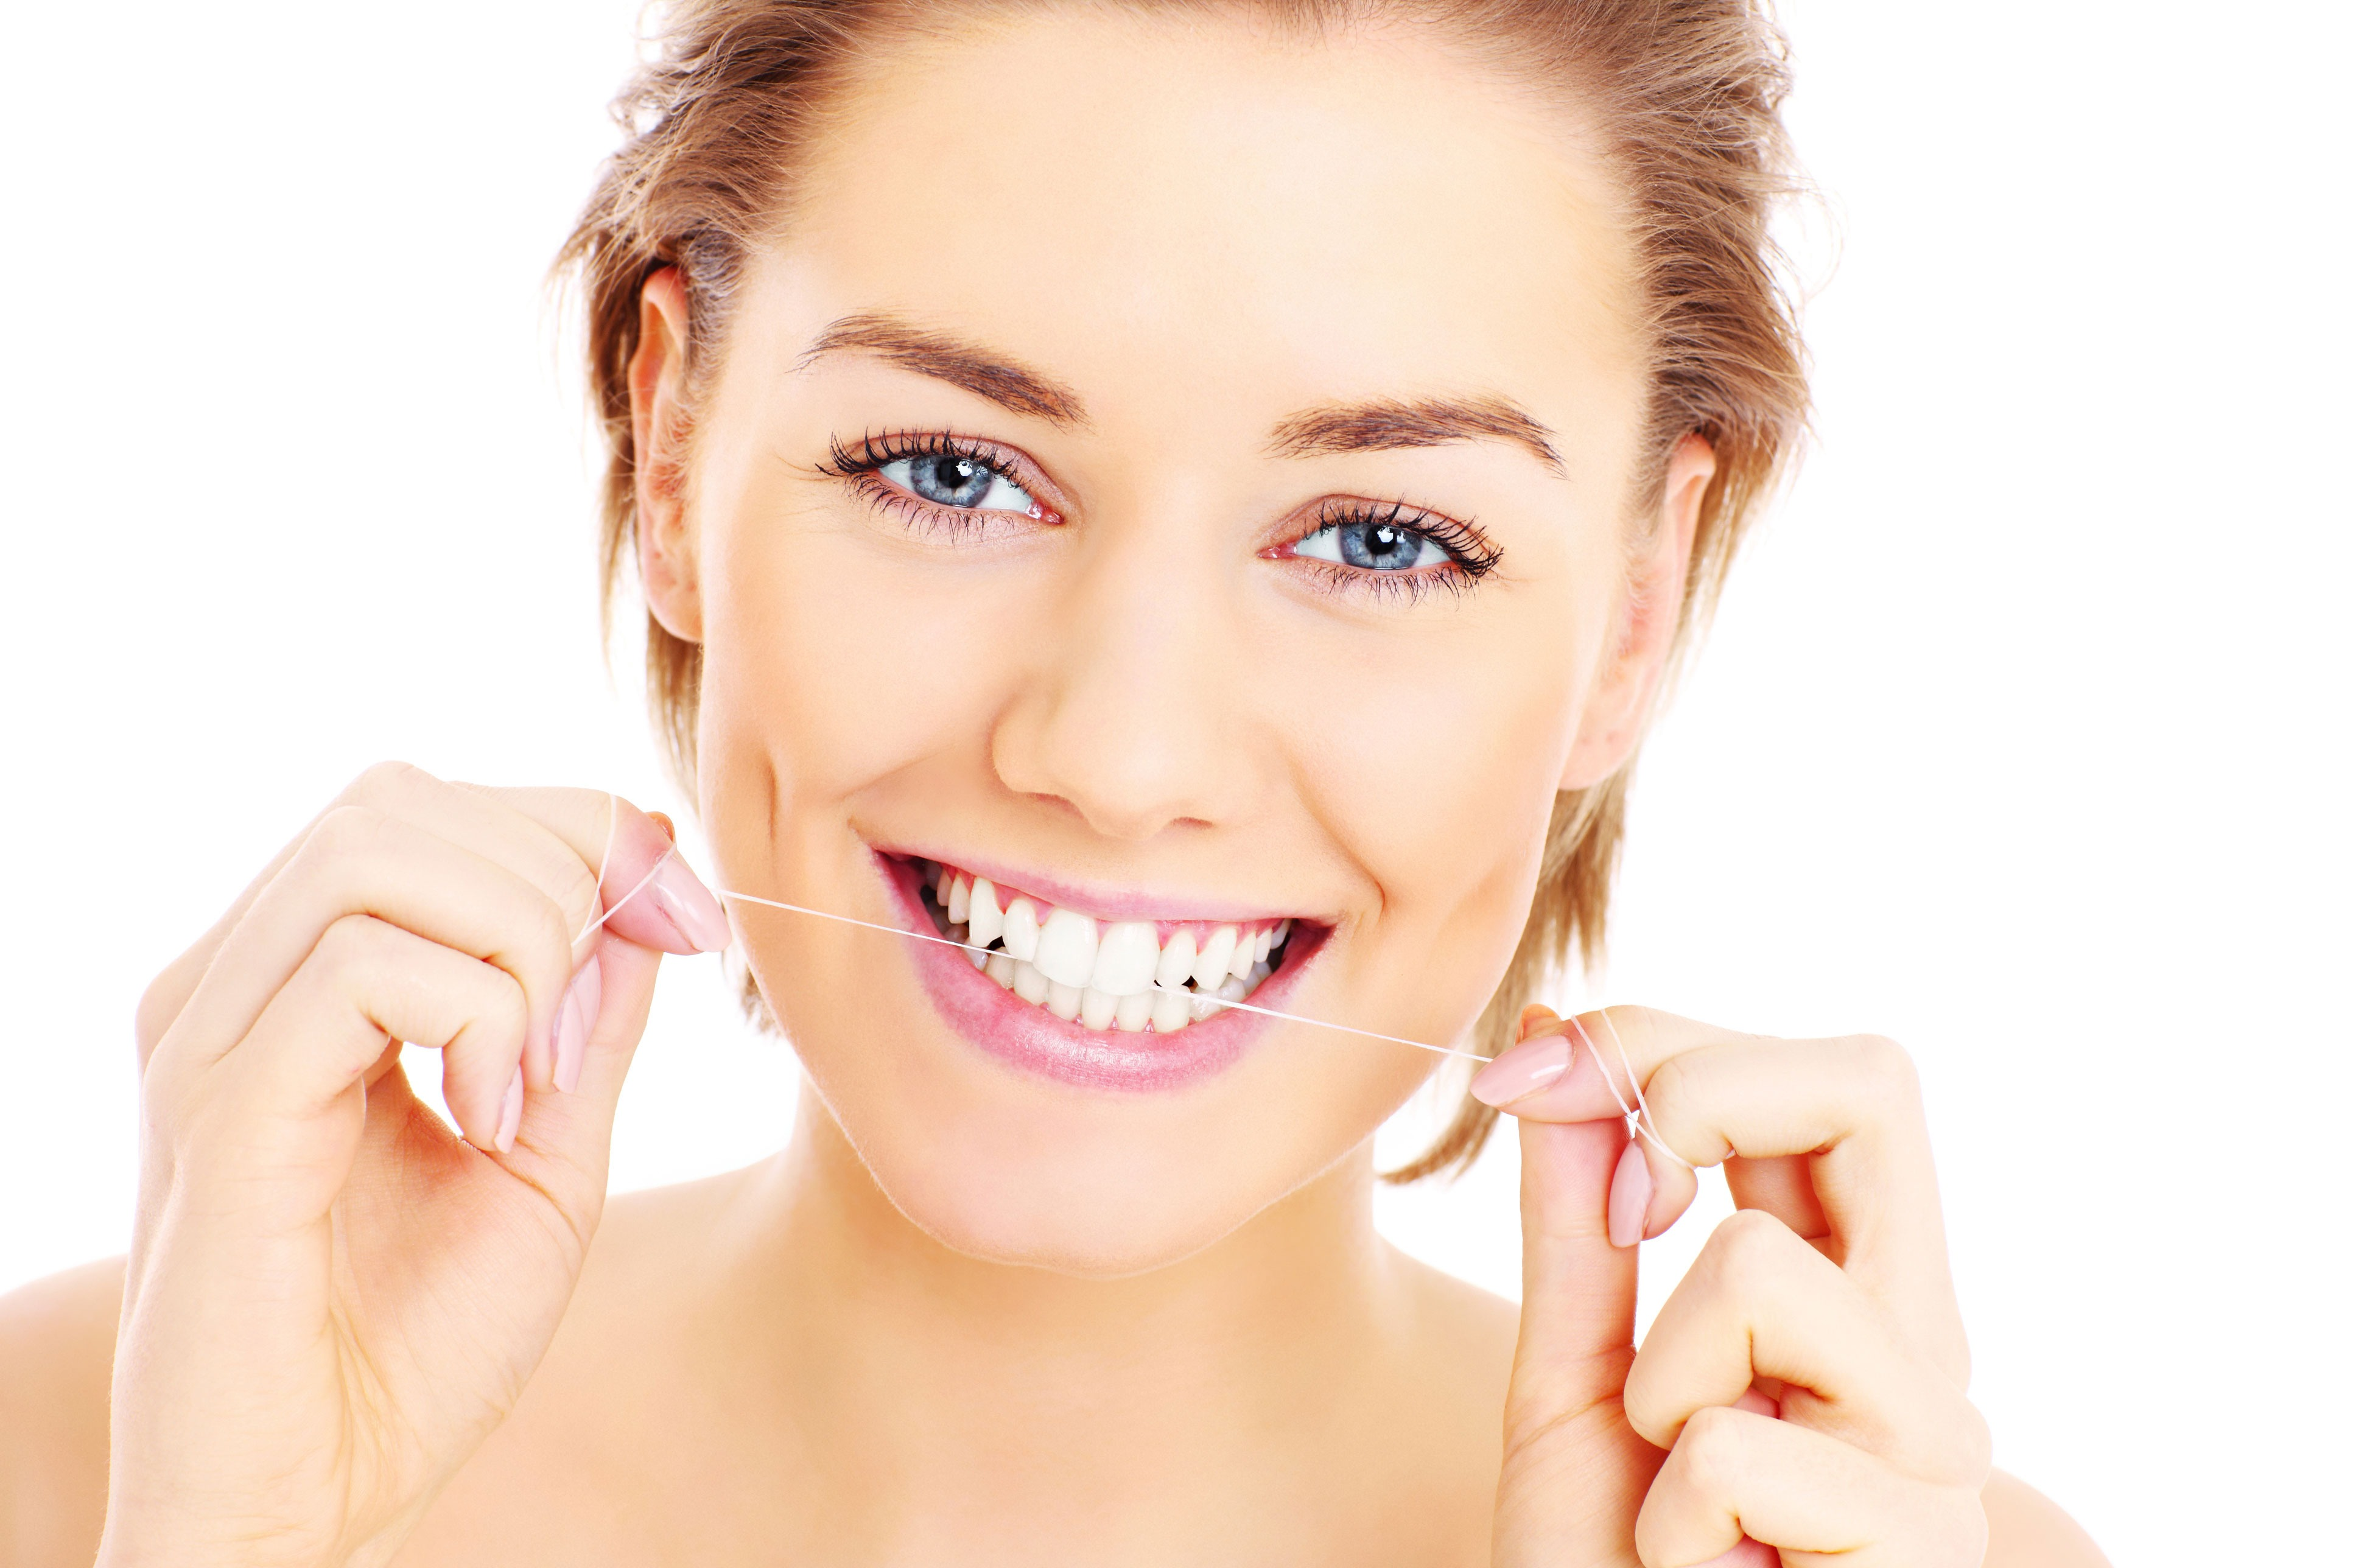 Dentist in West Allis | Only Floss The Teeth You Want To Keep